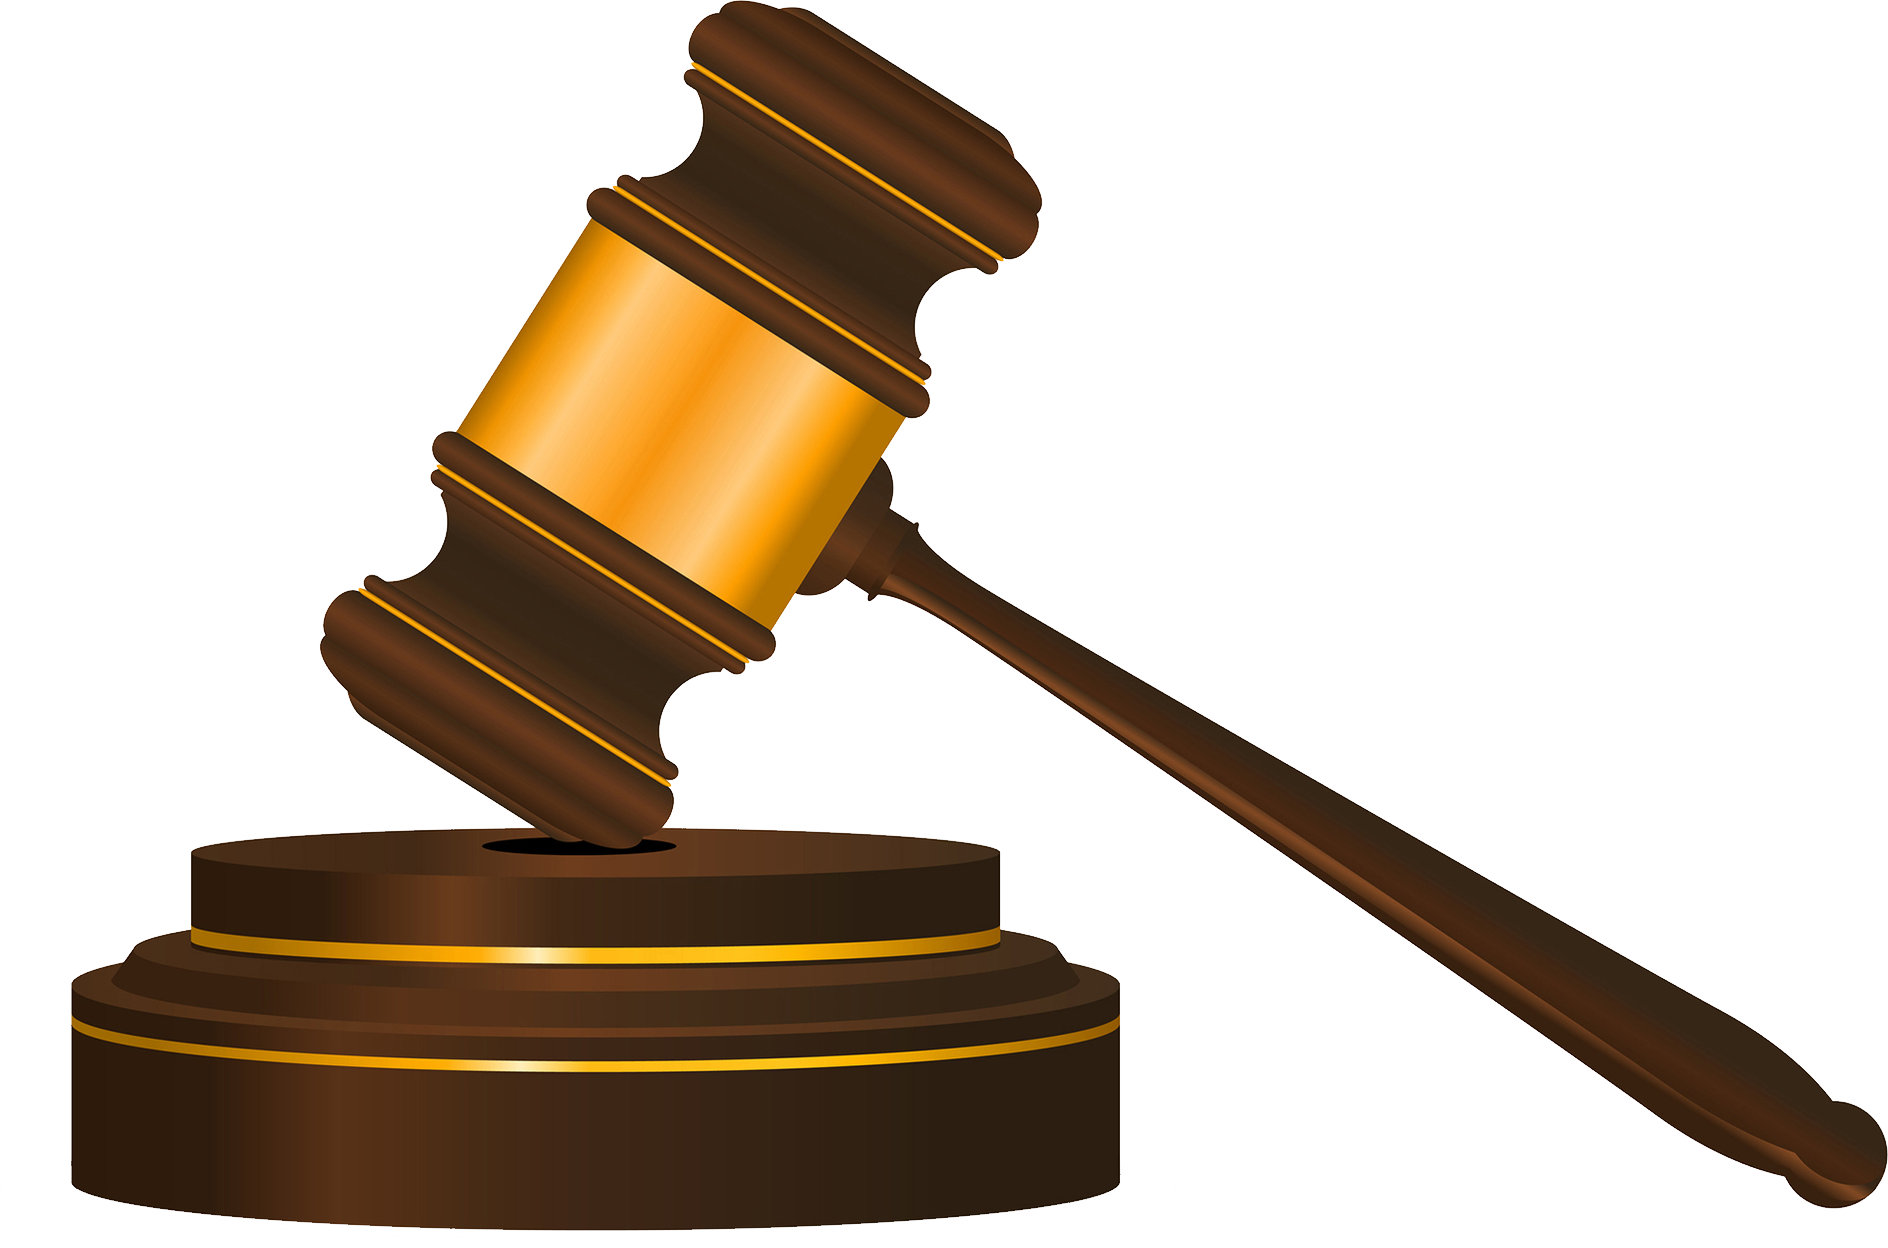 clip art freeuse download Png image purepng free. Gavel clipart